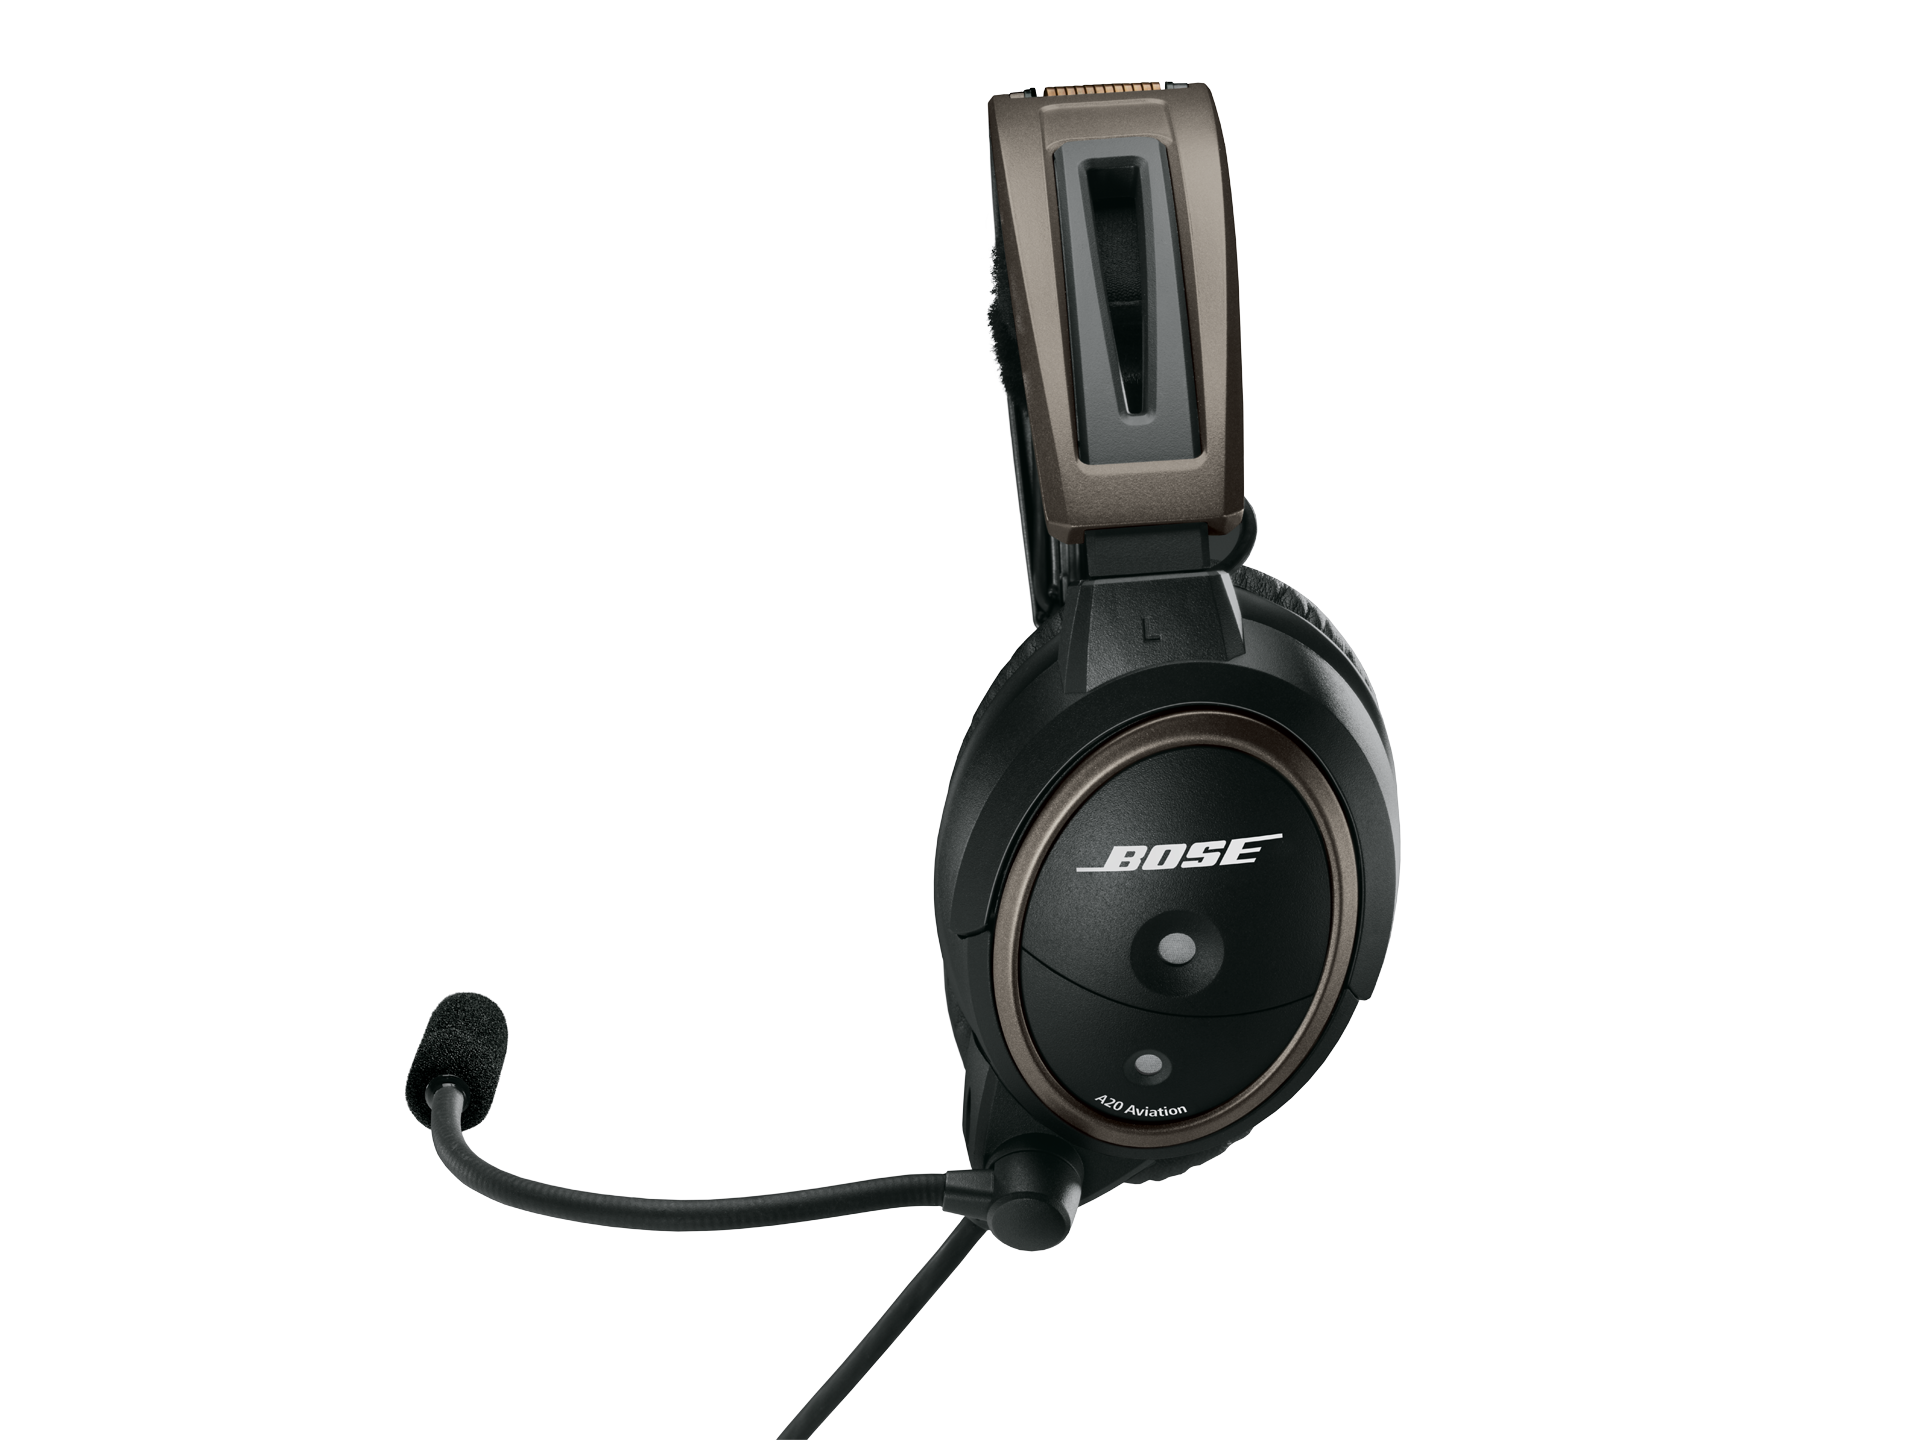 Bose A20 Helicopter Headset with U174 Plug, Bluetooth, Battery Powered, Straight Cable, Hi Imp. (324843-3030)Image Id:144812